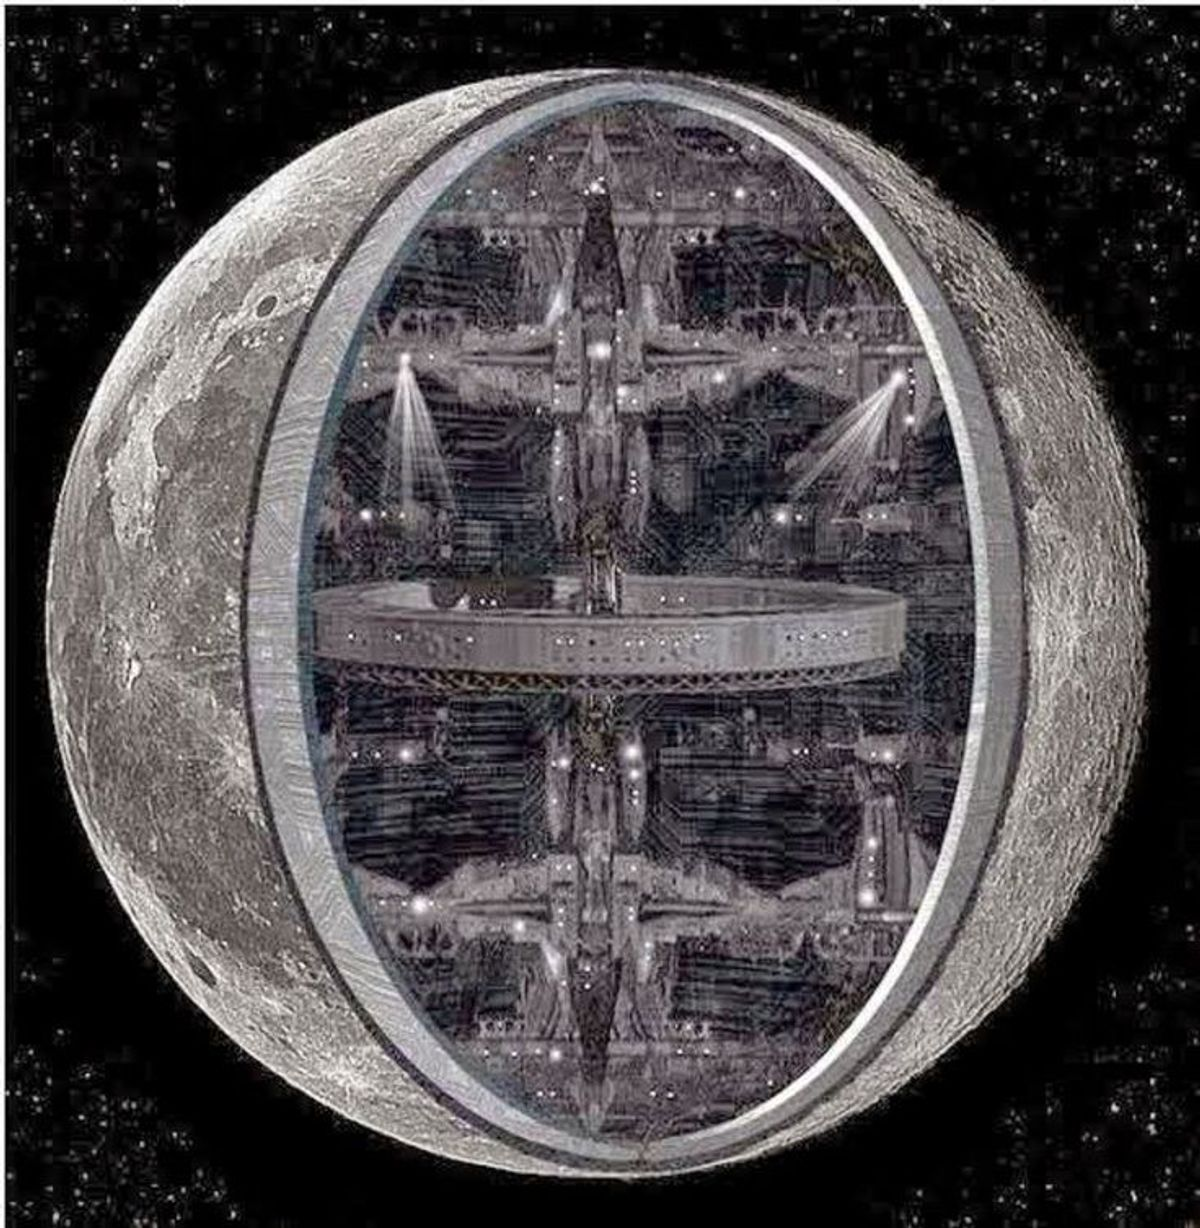 Is The Moon Hollow?